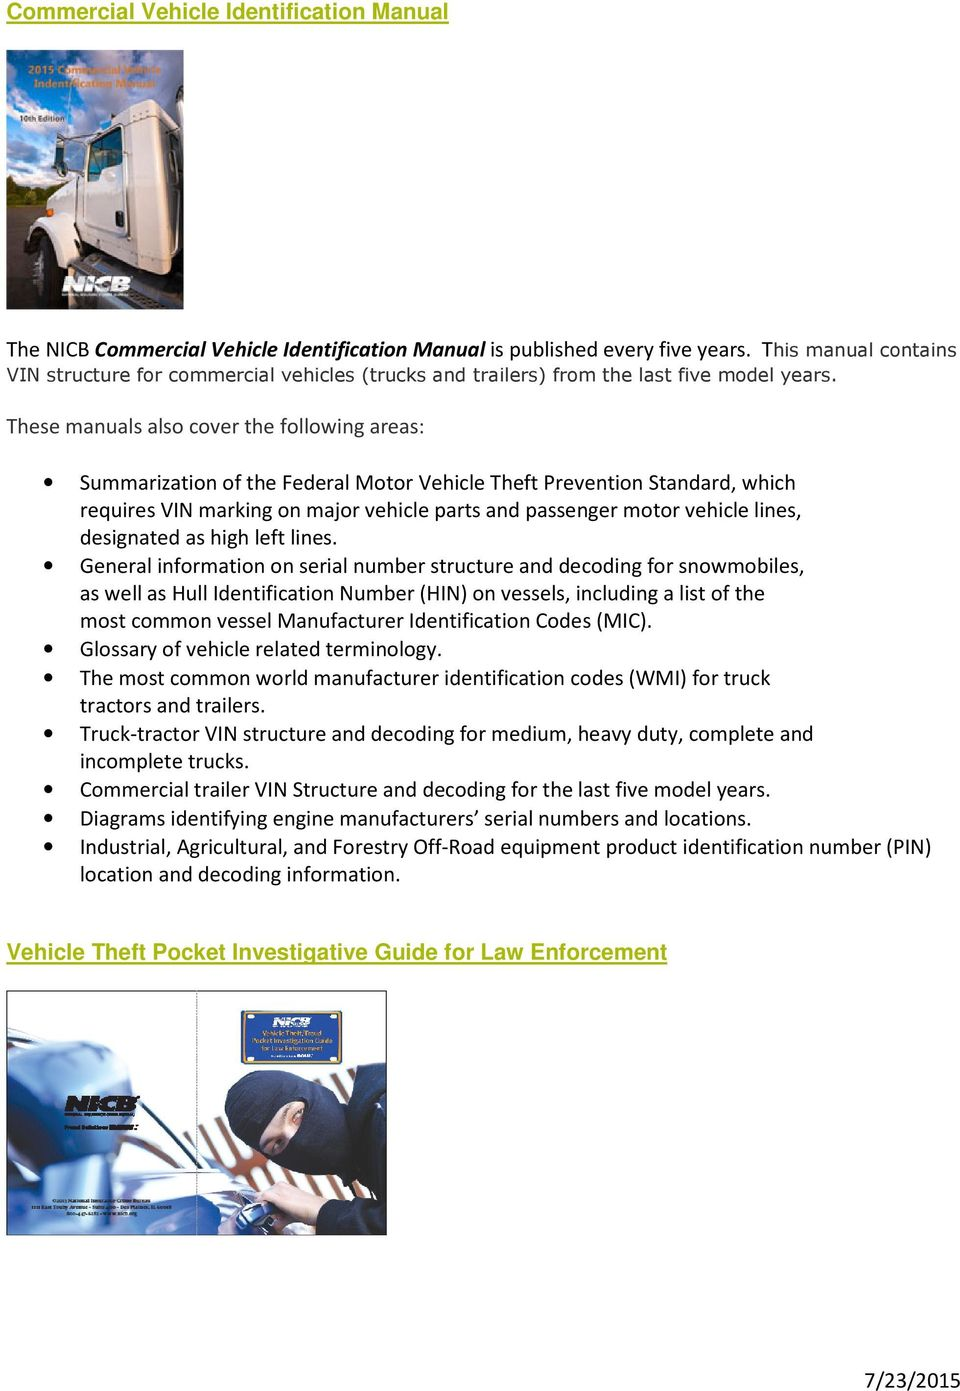 These manuals also cover the following areas: Summarization of the Federal Motor Vehicle Theft Prevention Standard, which requires VIN marking on major vehicle parts and passenger motor vehicle